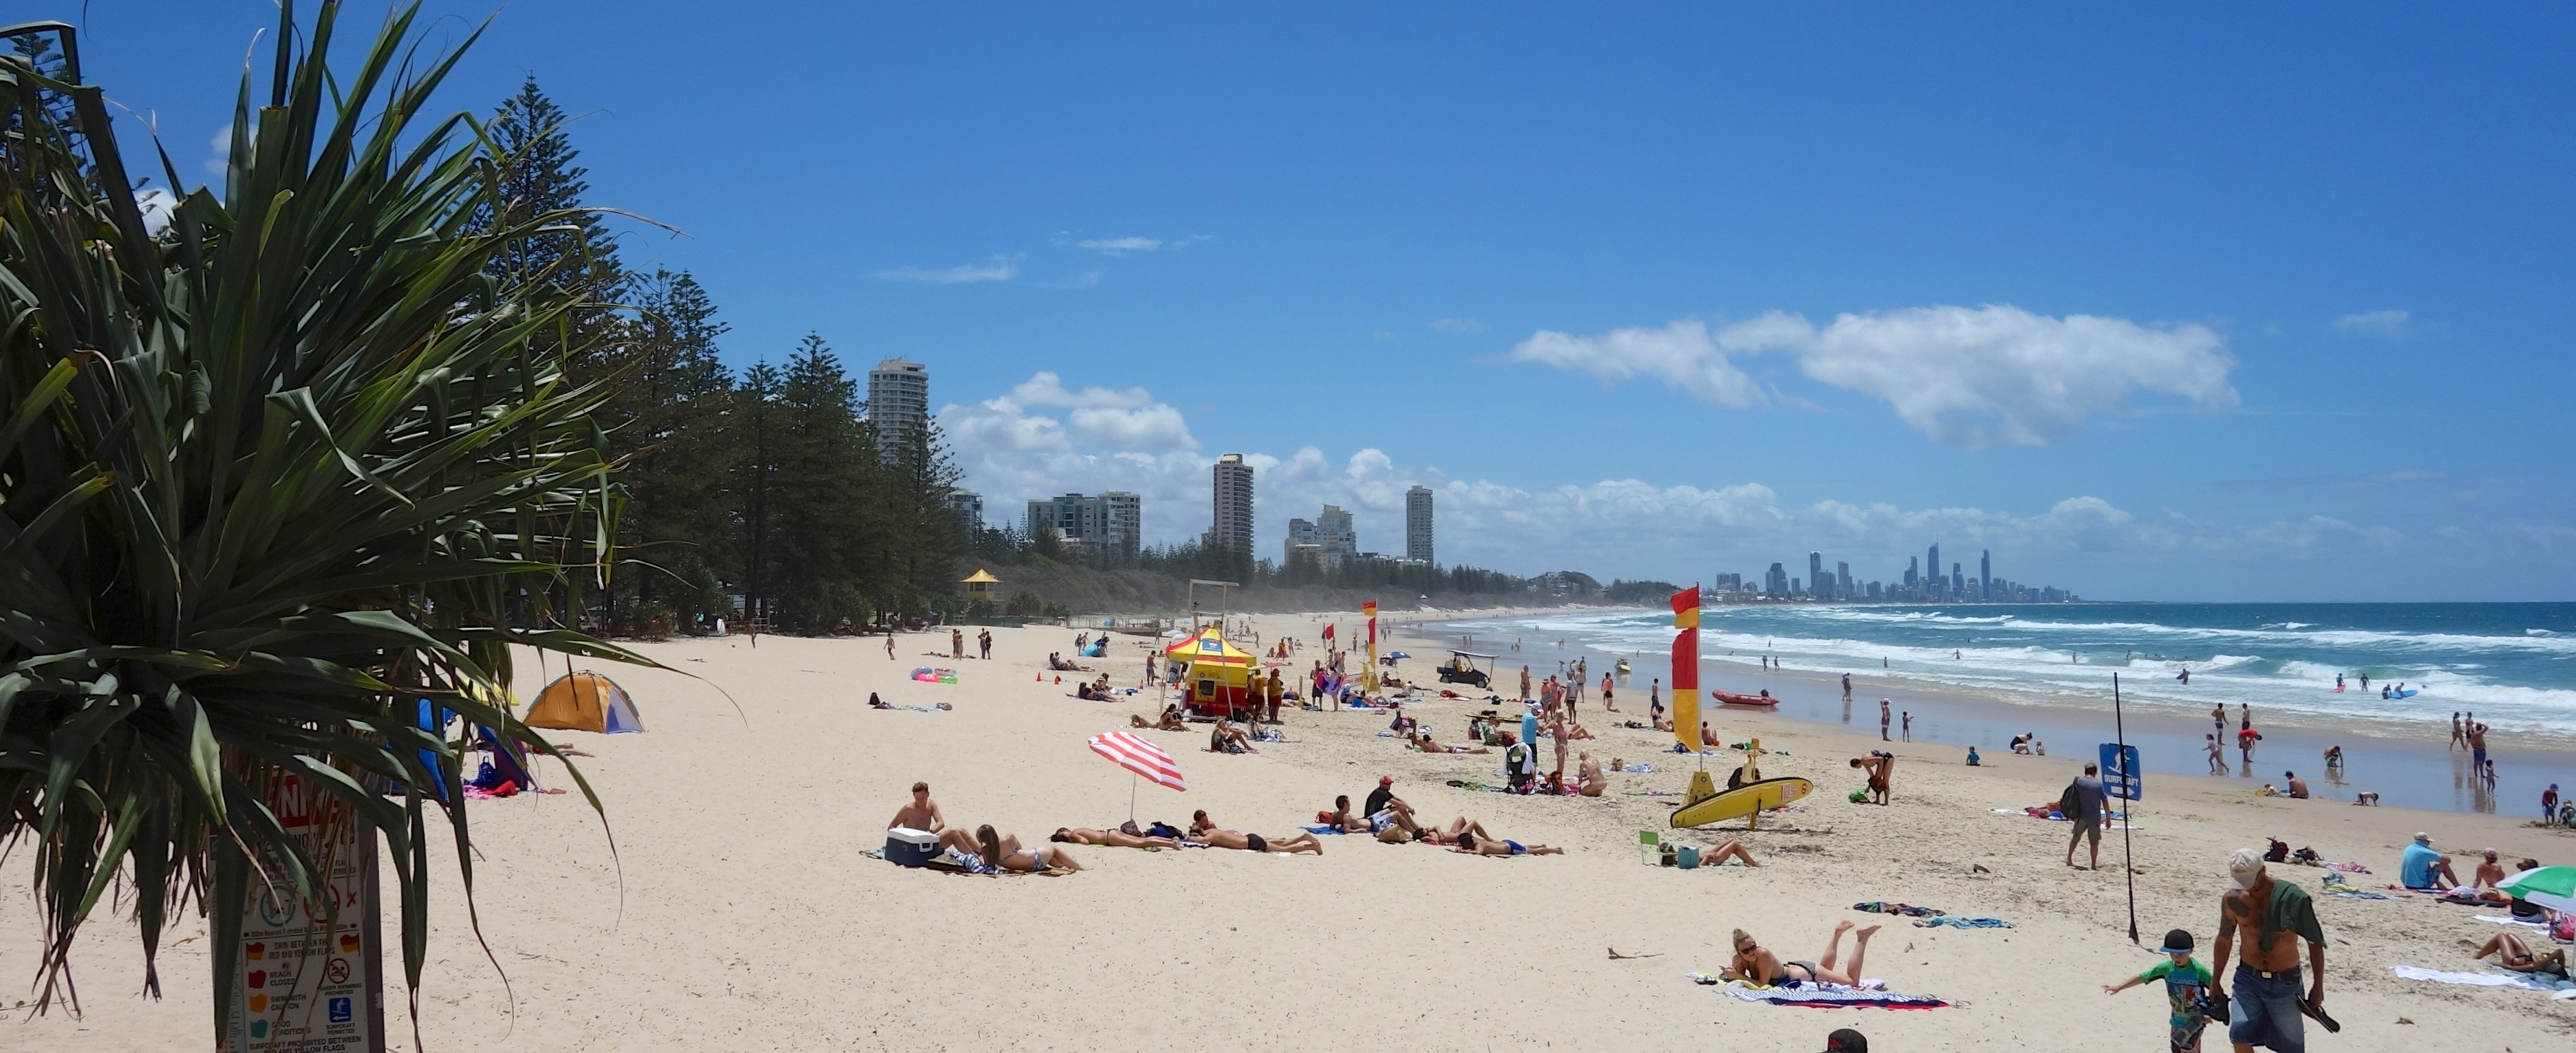 The surfing beach at Burleigh Heads